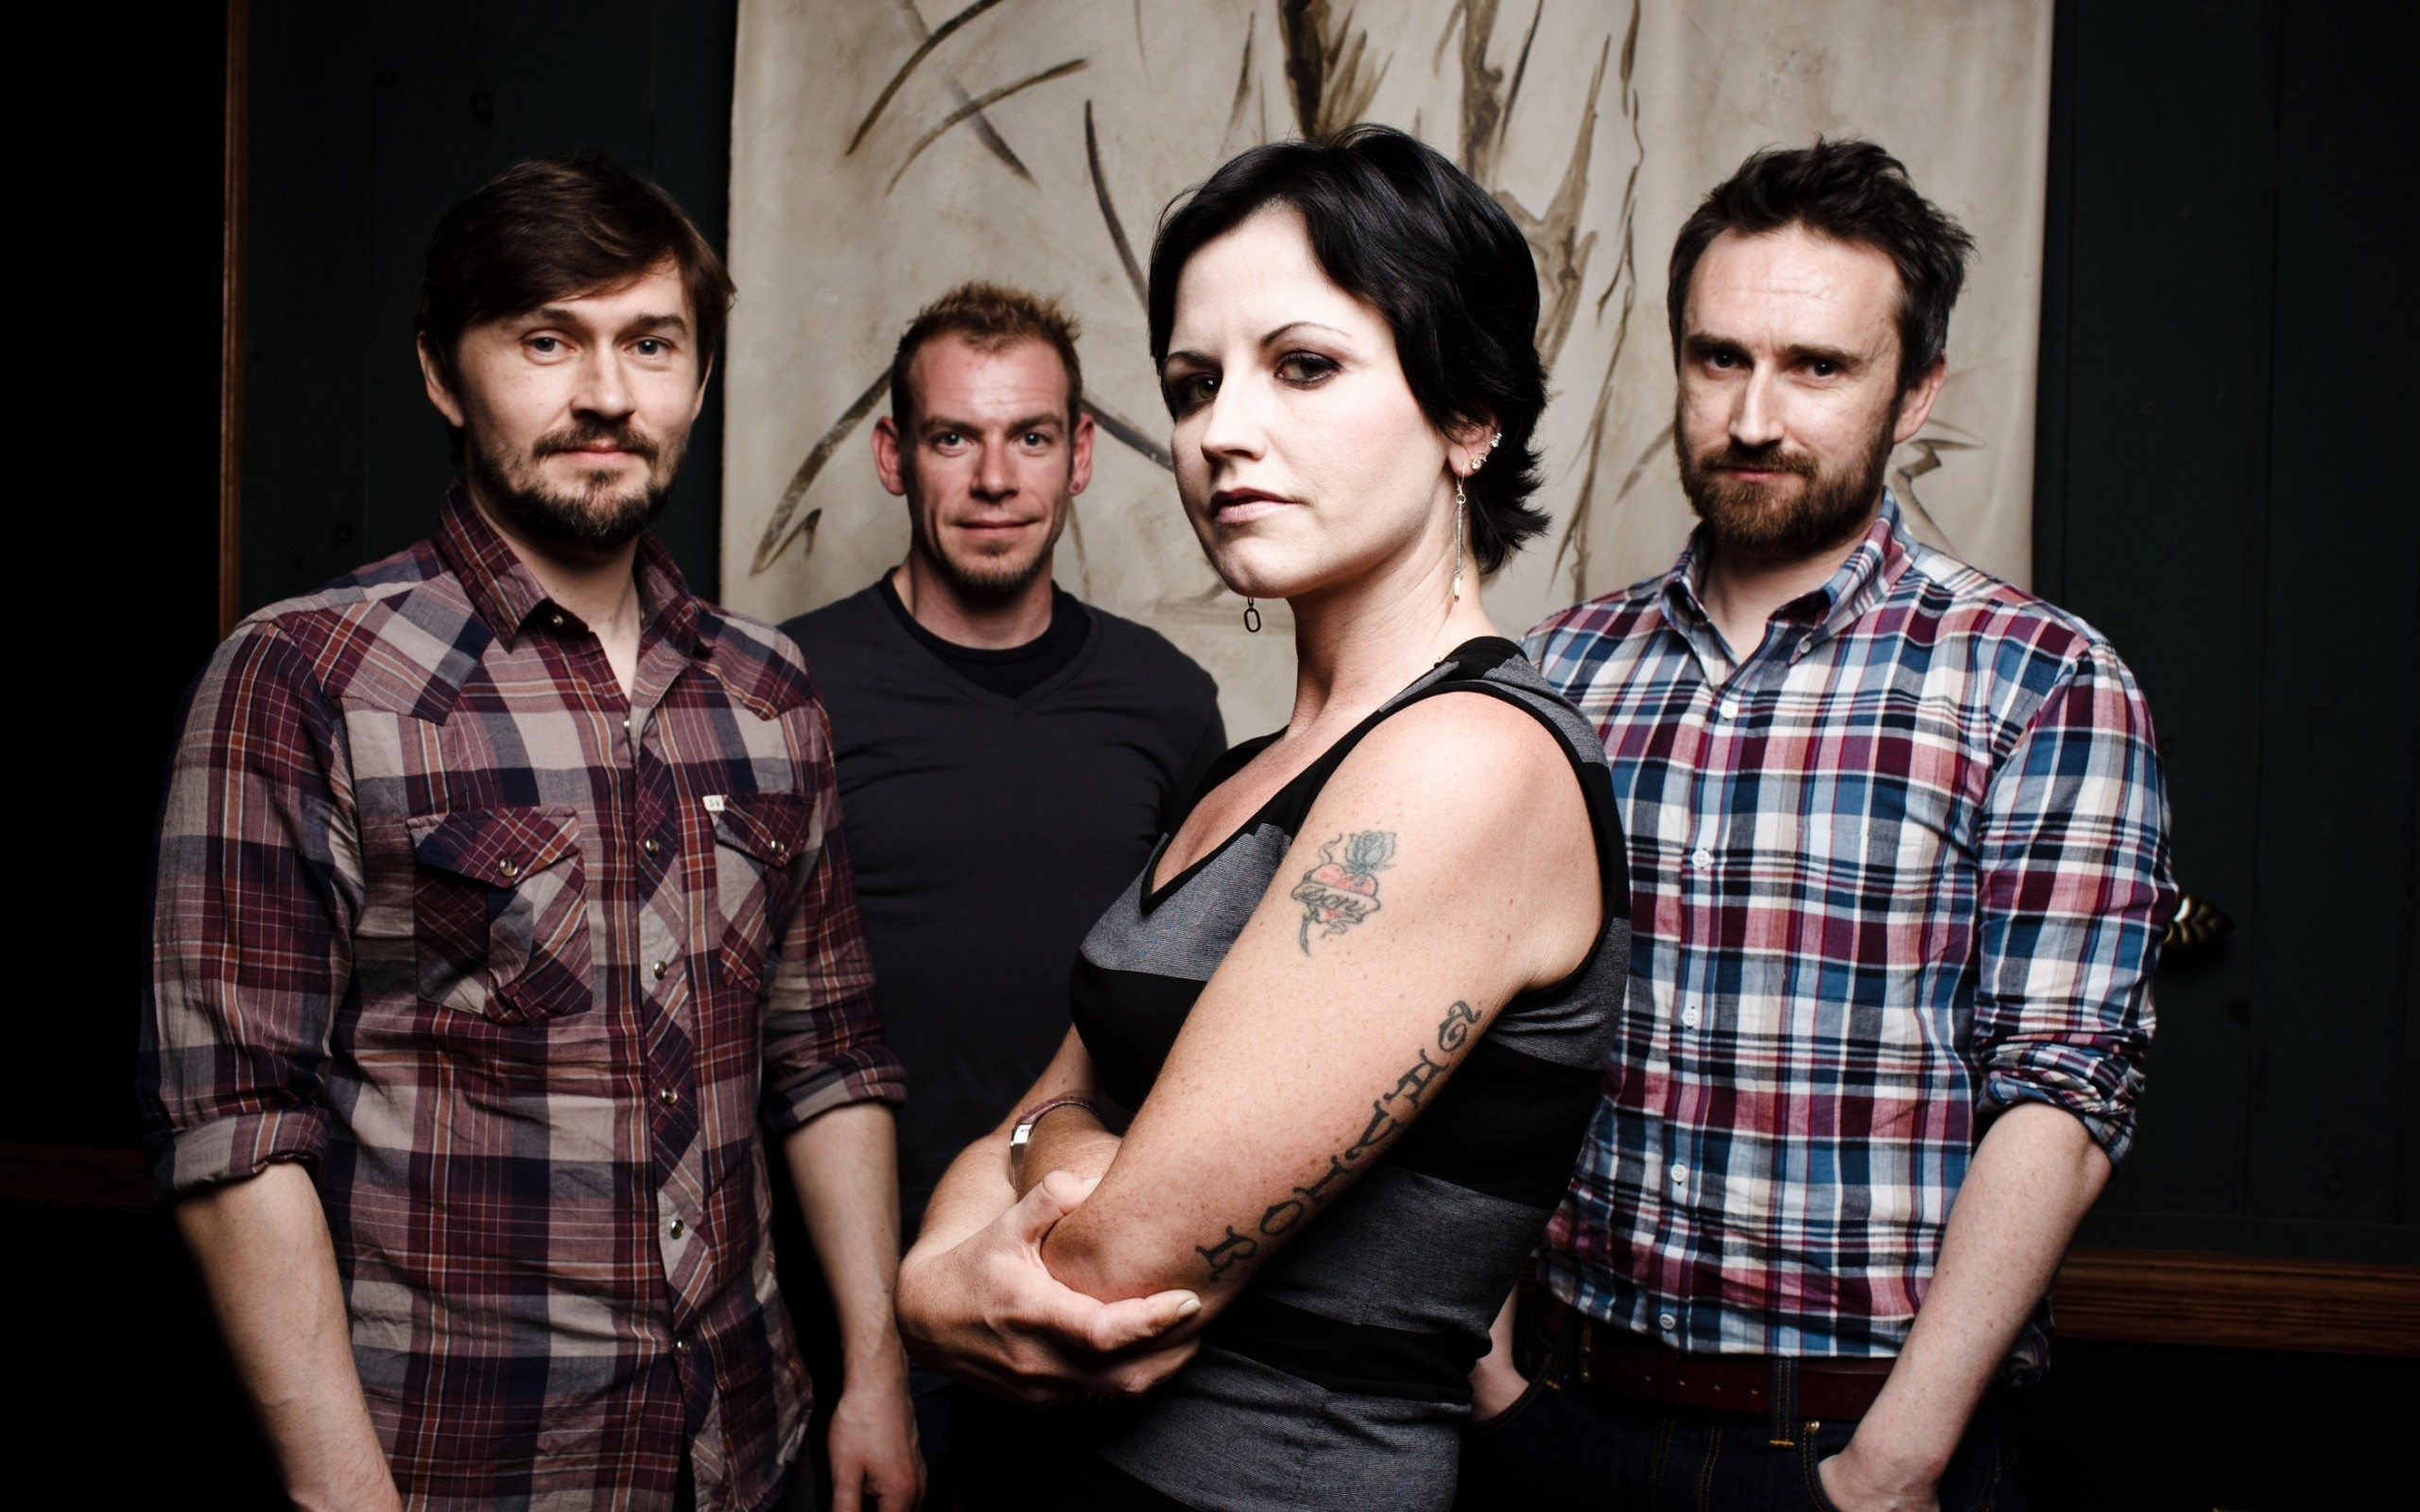 The Cranberries for 2560 x 1600 widescreen resolution